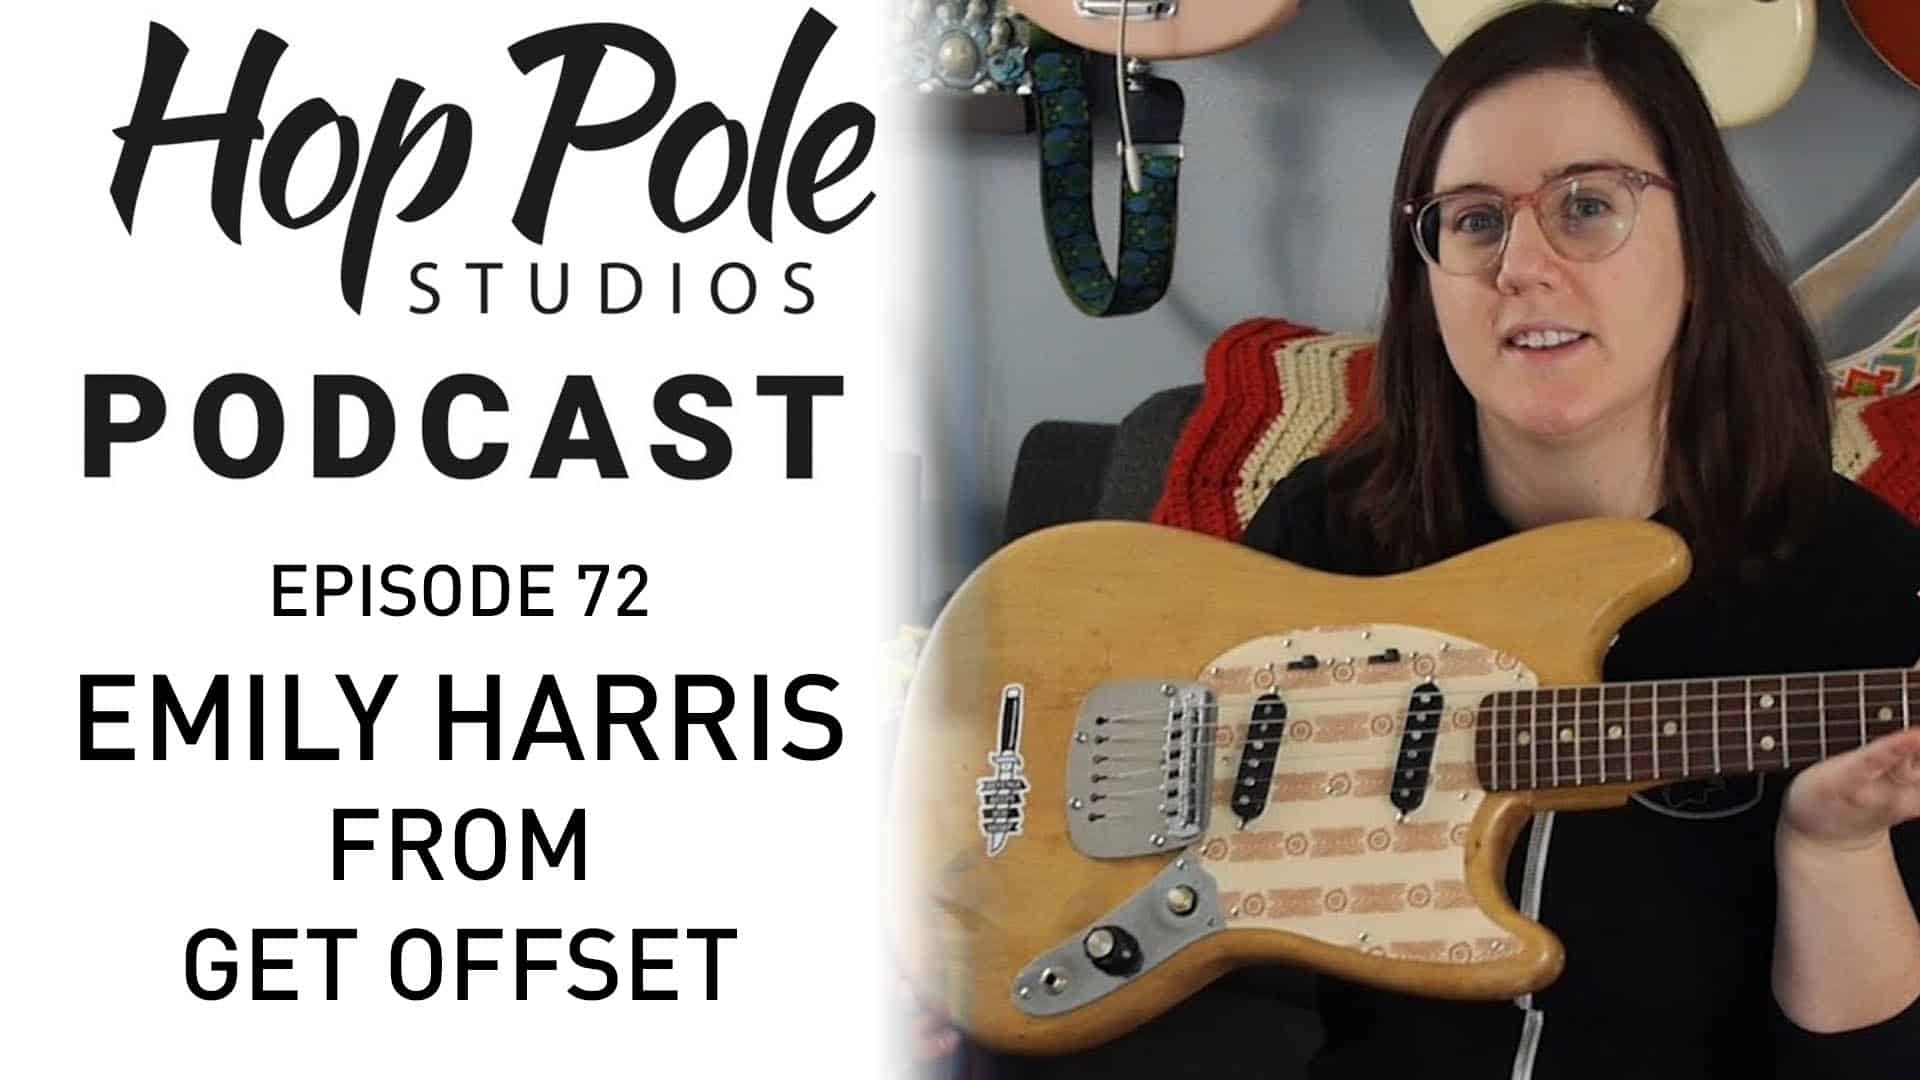 New SLATE VSX Headphones Announced! | The Hop Pole Podcast #072 feat. Emily Harris of Get Offset